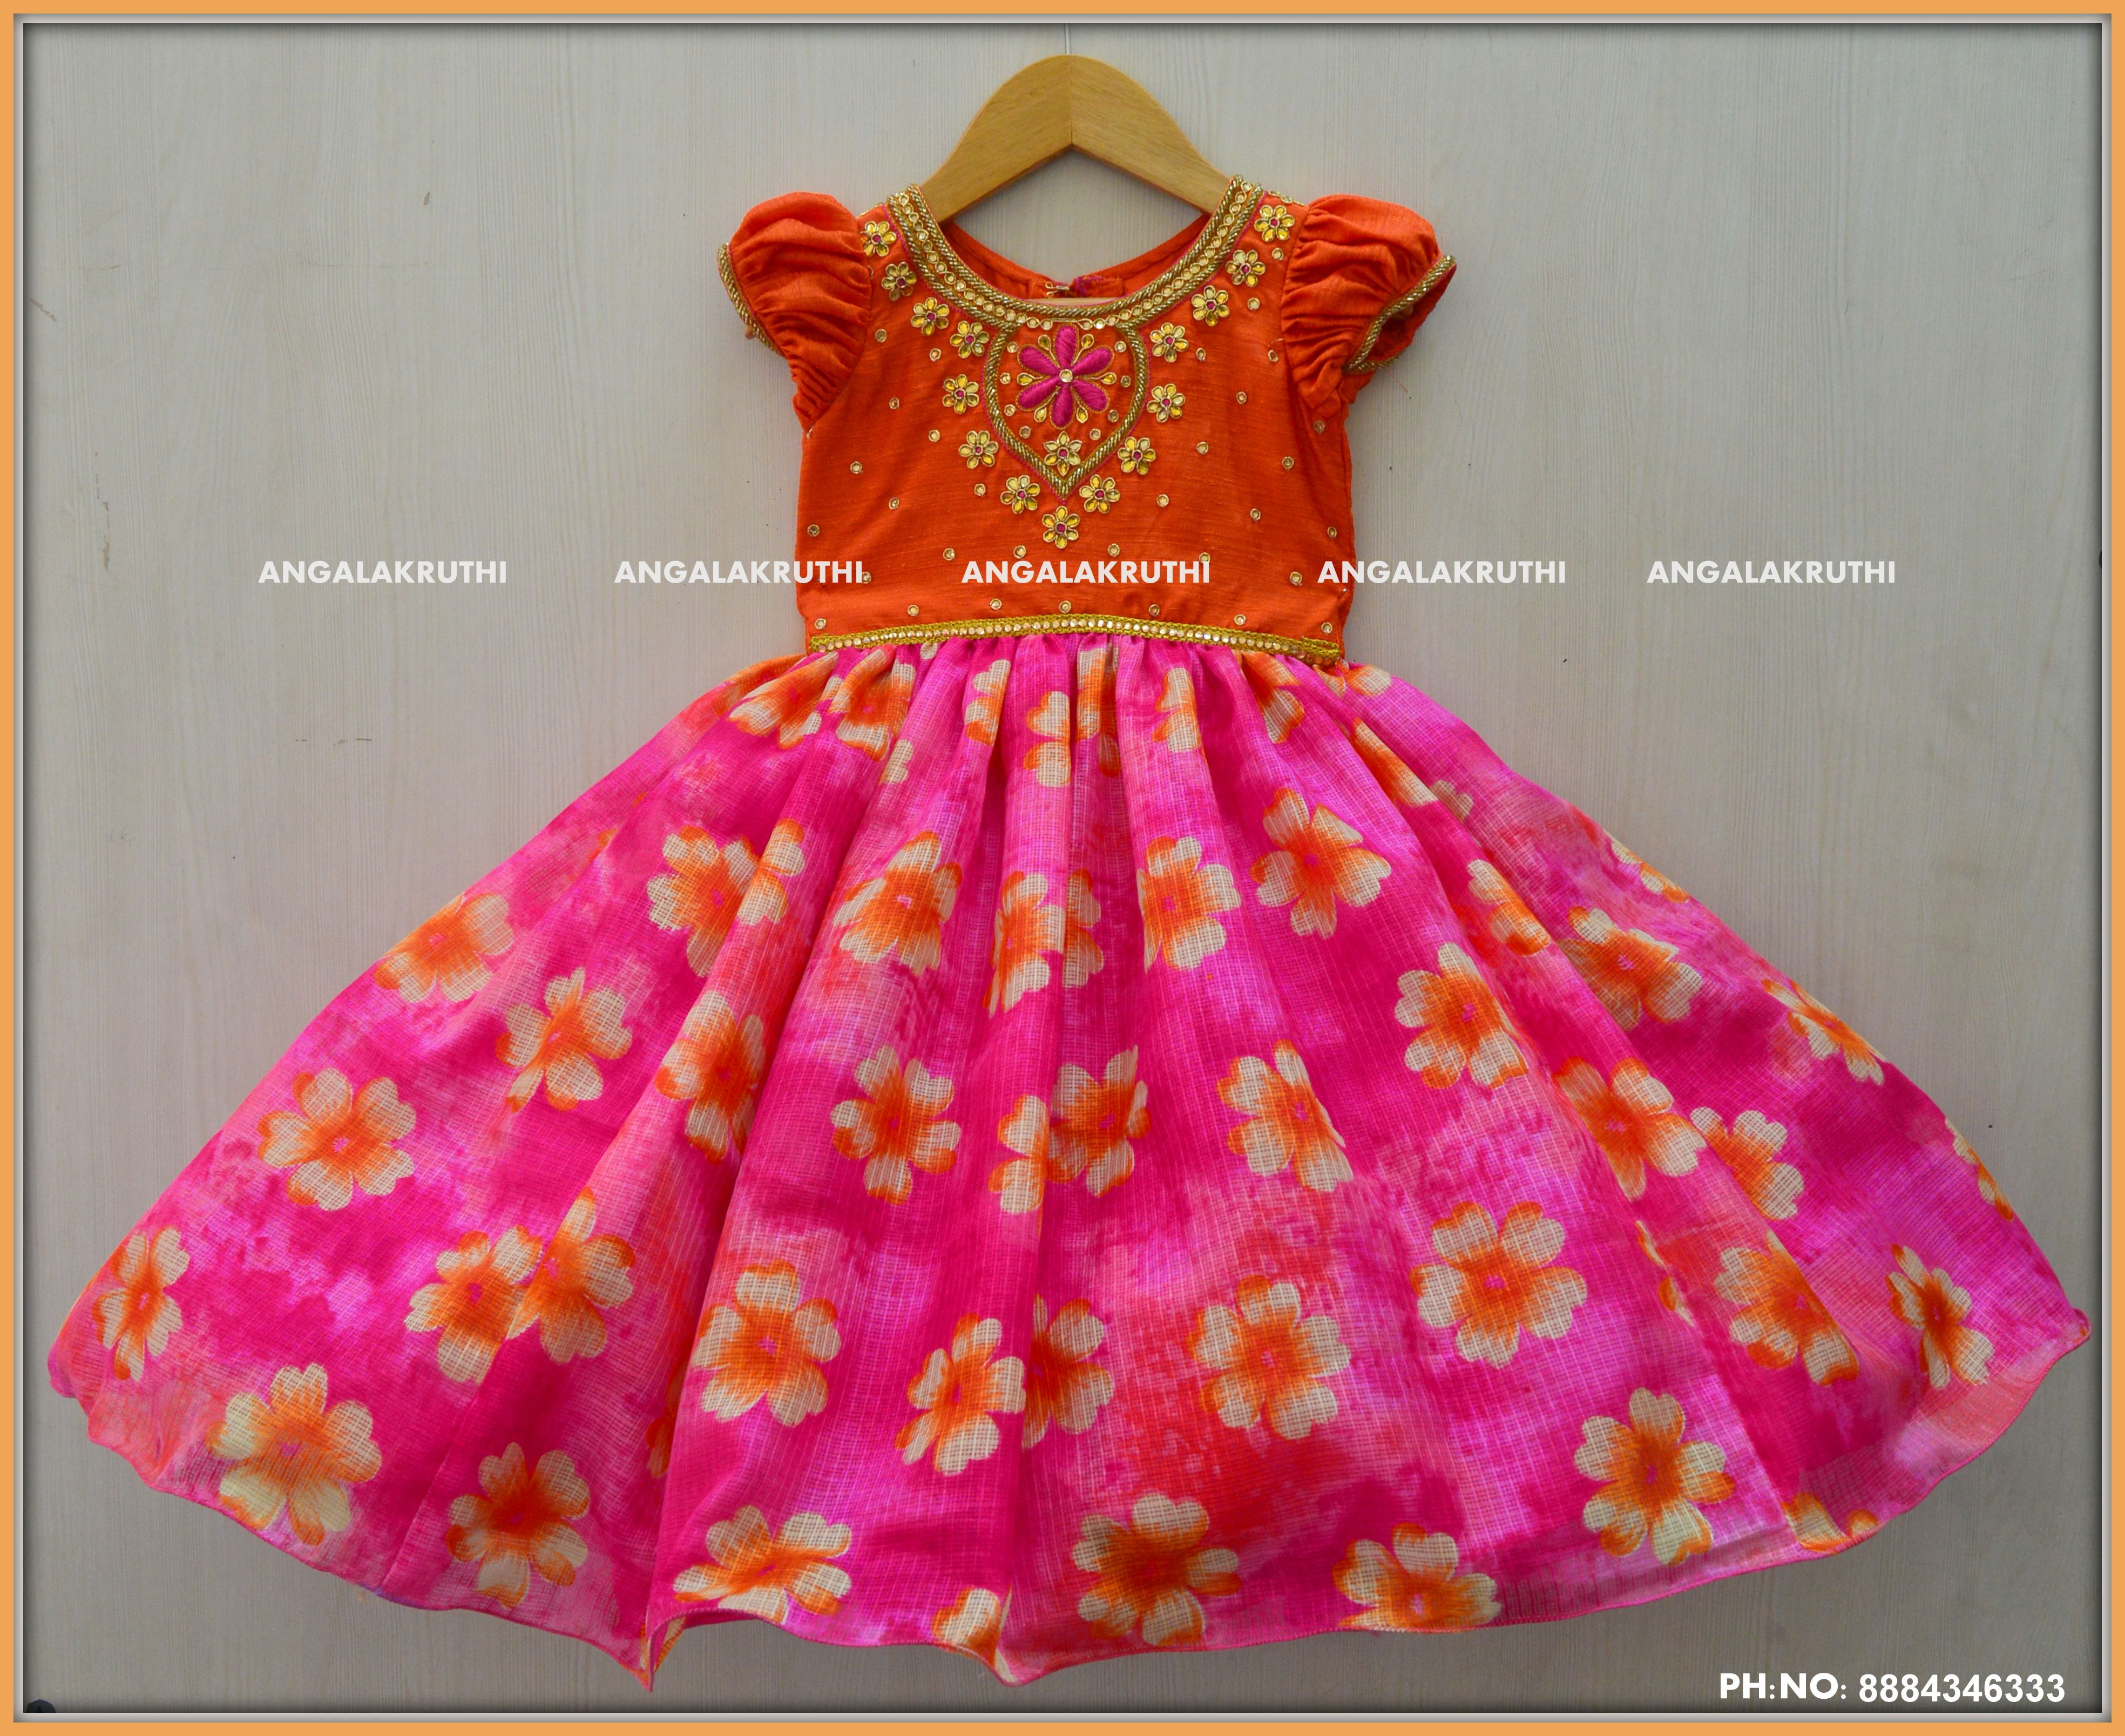 Floral Kids Frock with hand Embroidery by Angalakruthi Bangalore